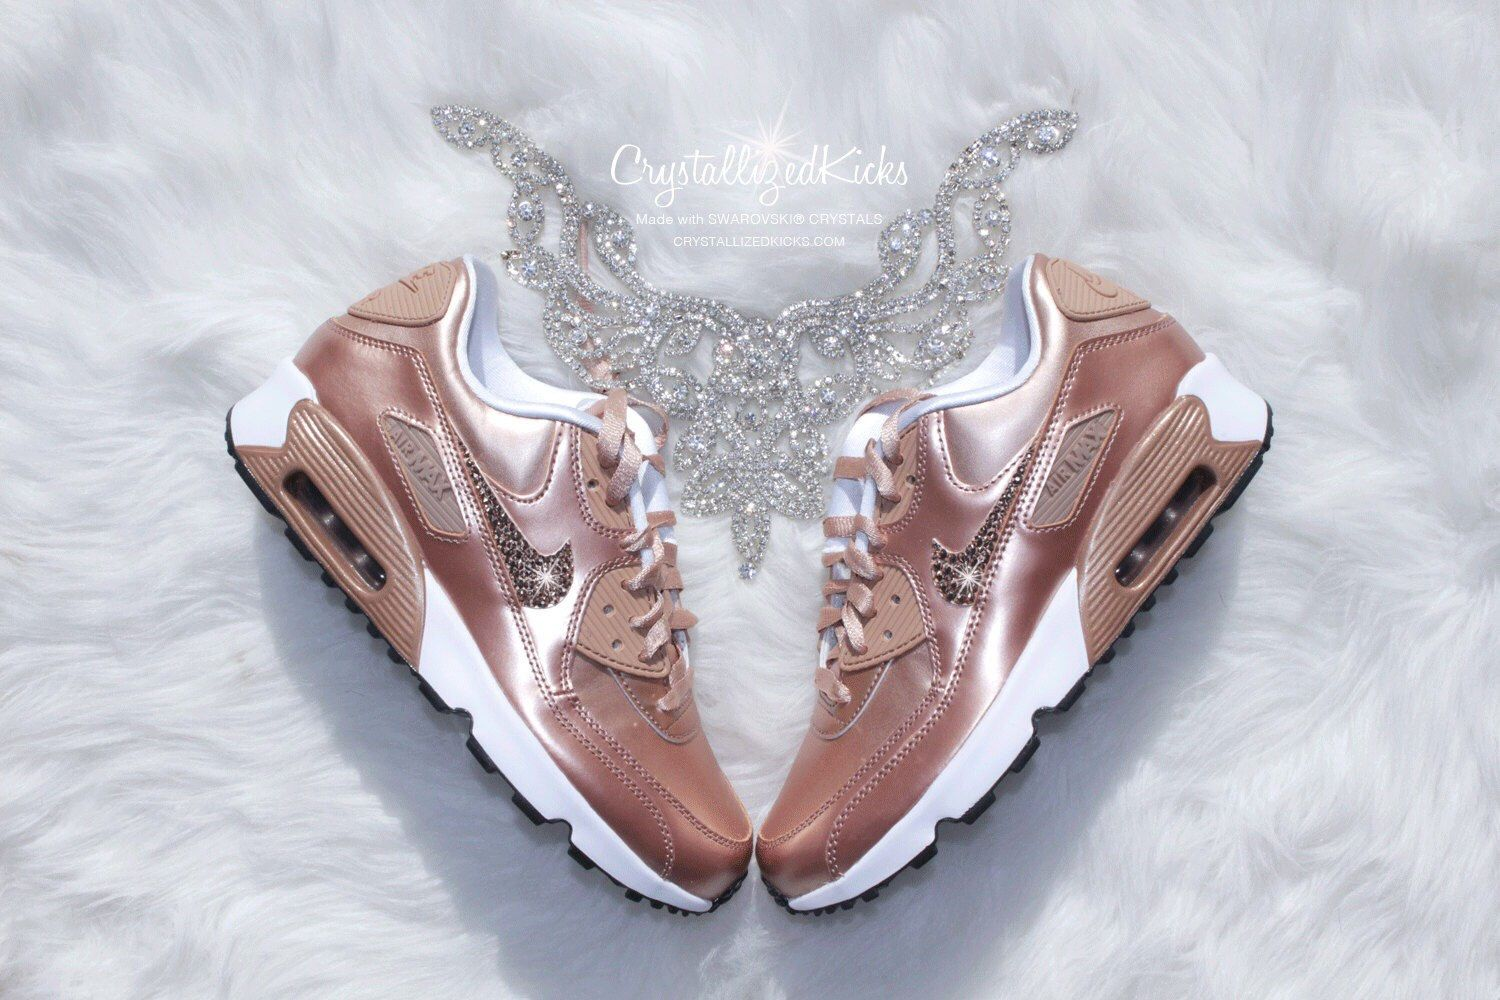 19b832abb96 ... Nike Air Max 90 Rose Gold Sneakers Made with SWAROVSKI® Crystals - WhiteMetallic  Rose Gold ...